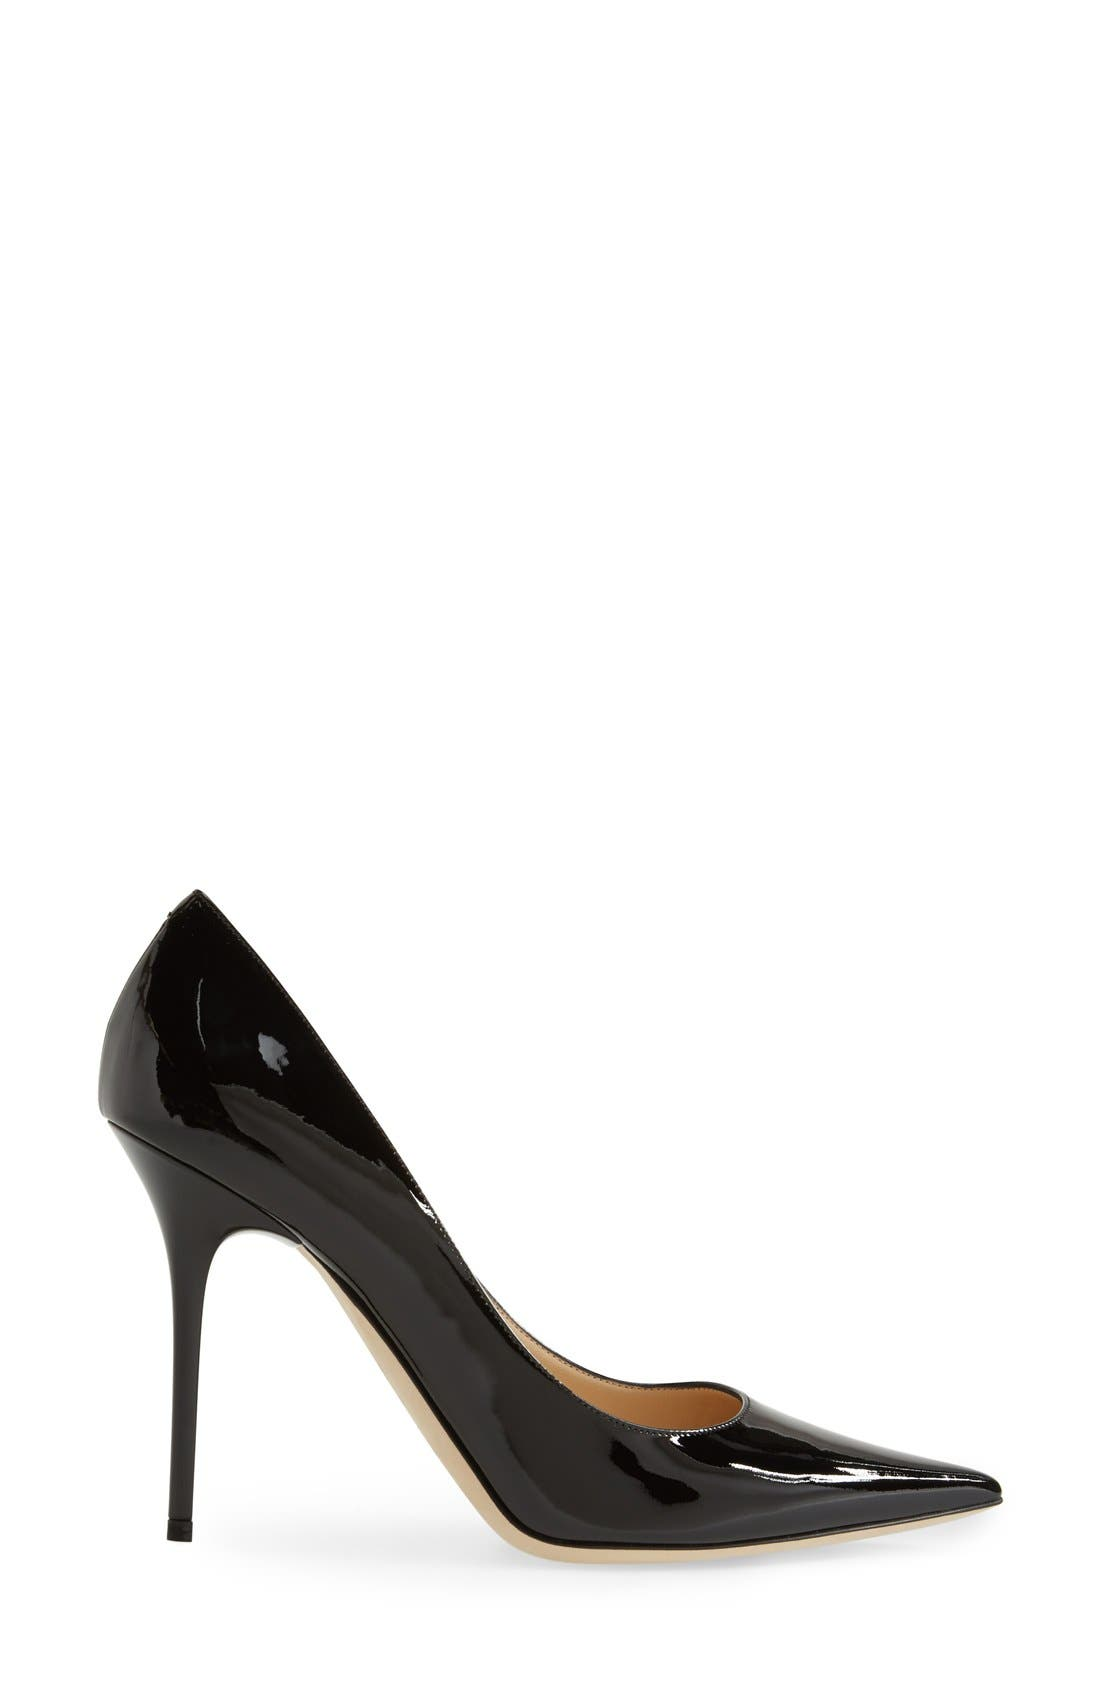 'Abel' Pointy Toe Pump,                             Alternate thumbnail 2, color,                             001